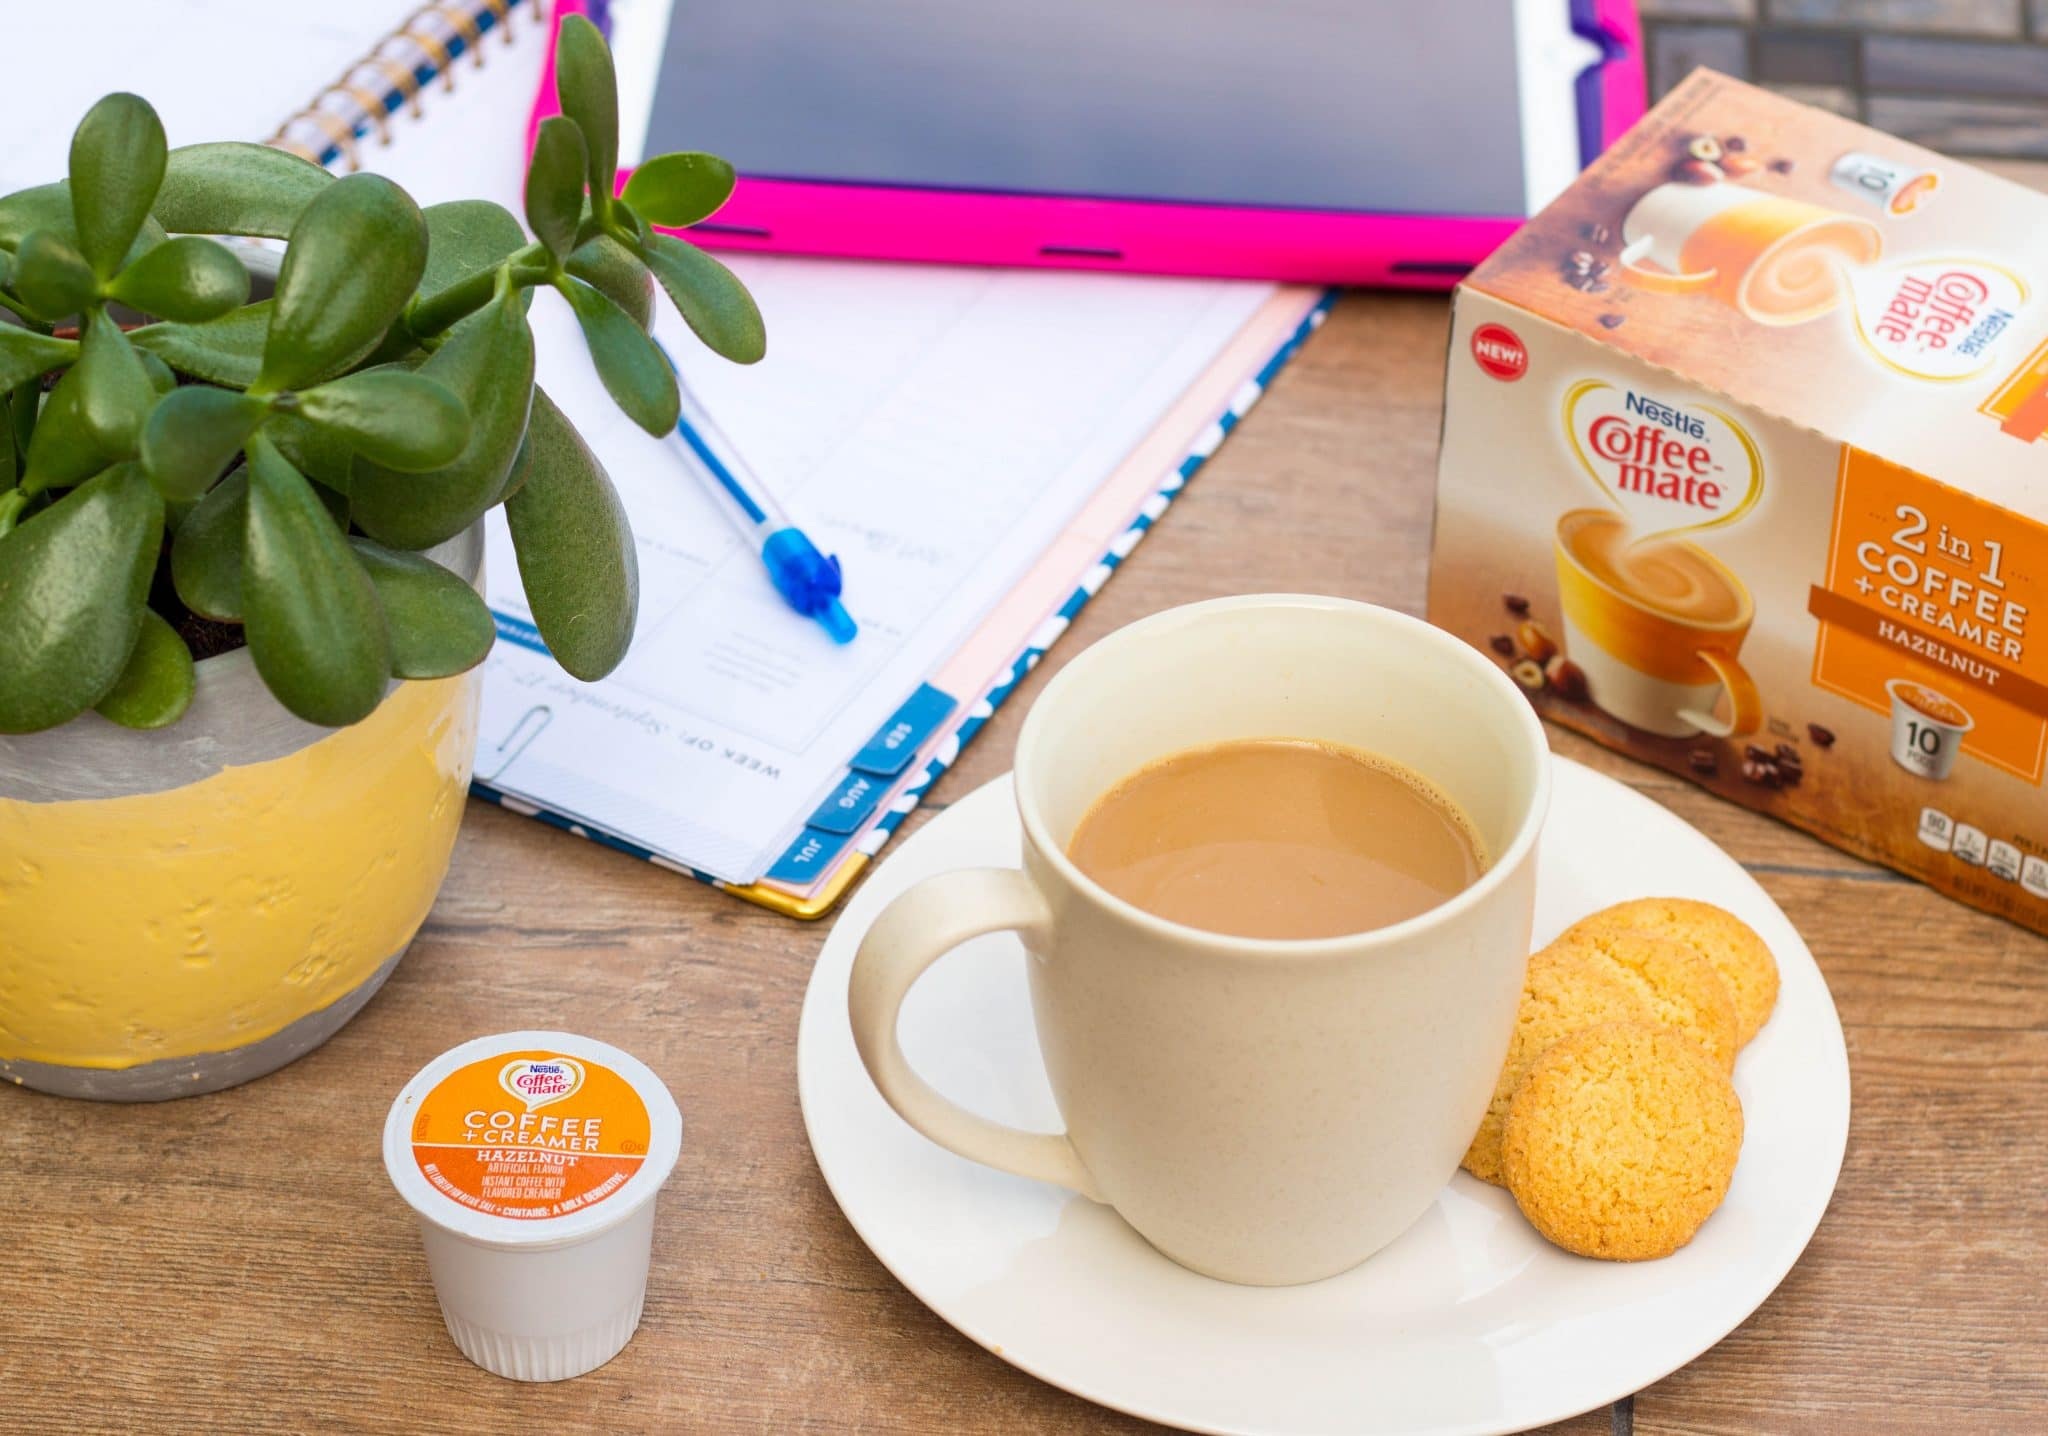 You need a quiet moment before your family wakes up! NESTLÉ® 2 in 1 Coffee Pods contain both coffee & creamer! Brew your coffee in one simple step!